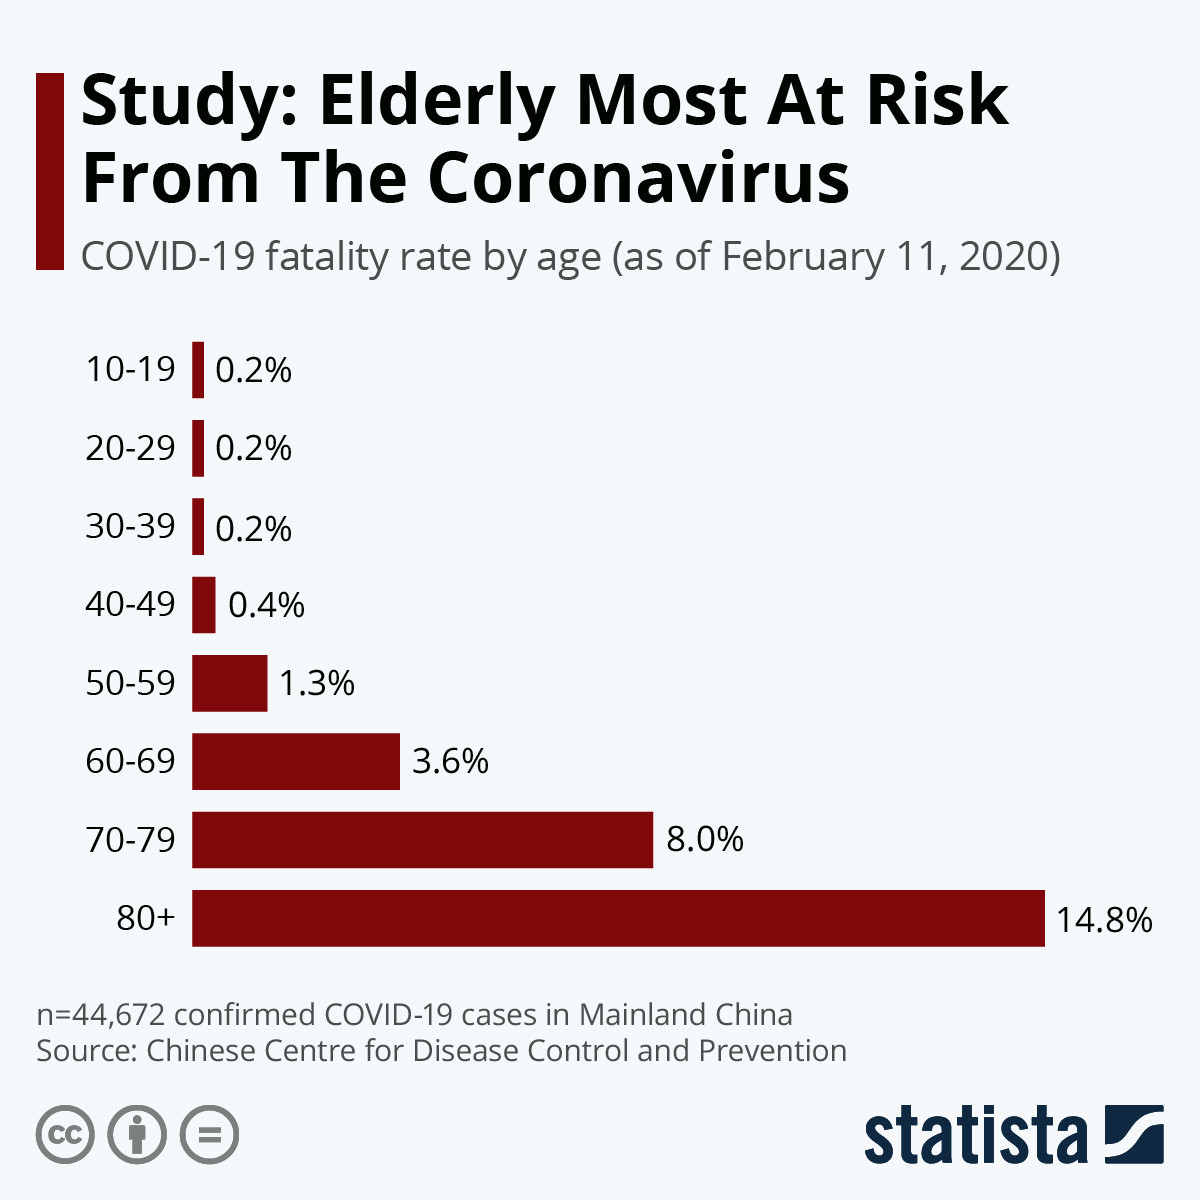 The elderly are most at risk from coronavirus